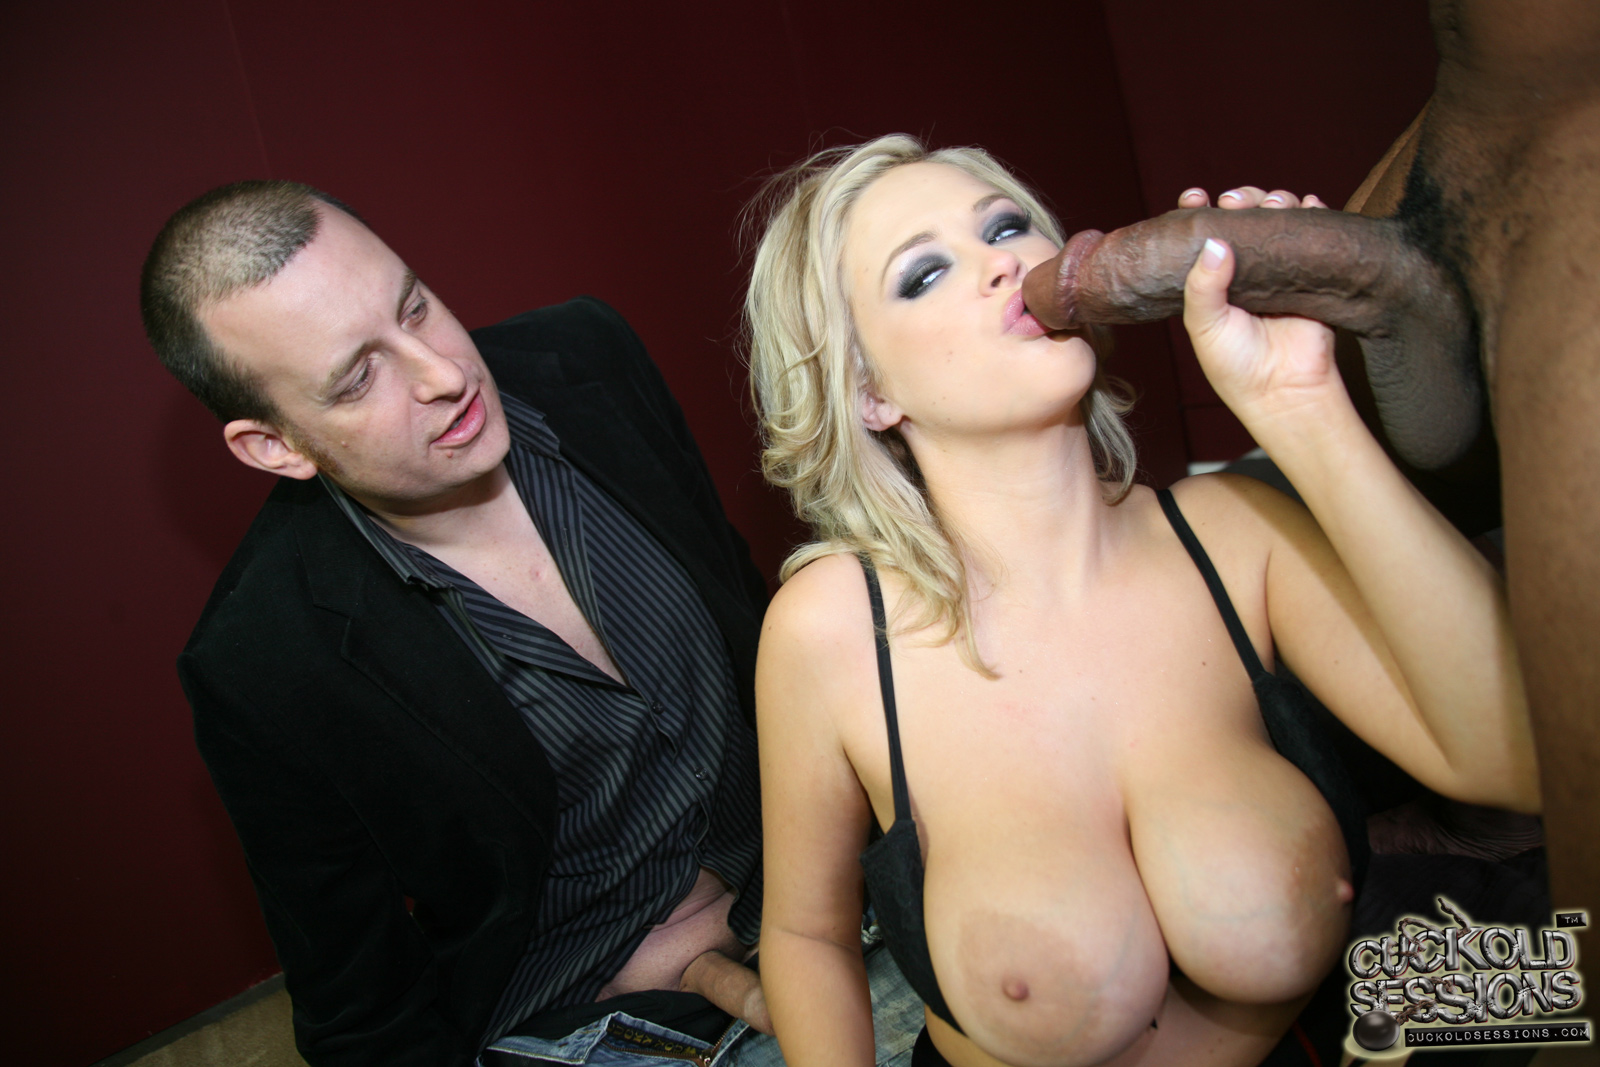 Interracial Cuckold Wedding Pretty blonde babe katie kox with huge tits shows her love for massive